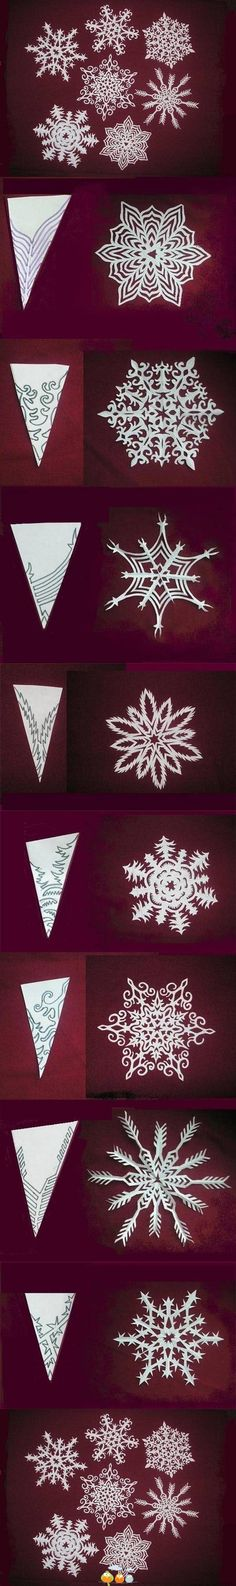 Paper Snowflakes by brandy kuhns